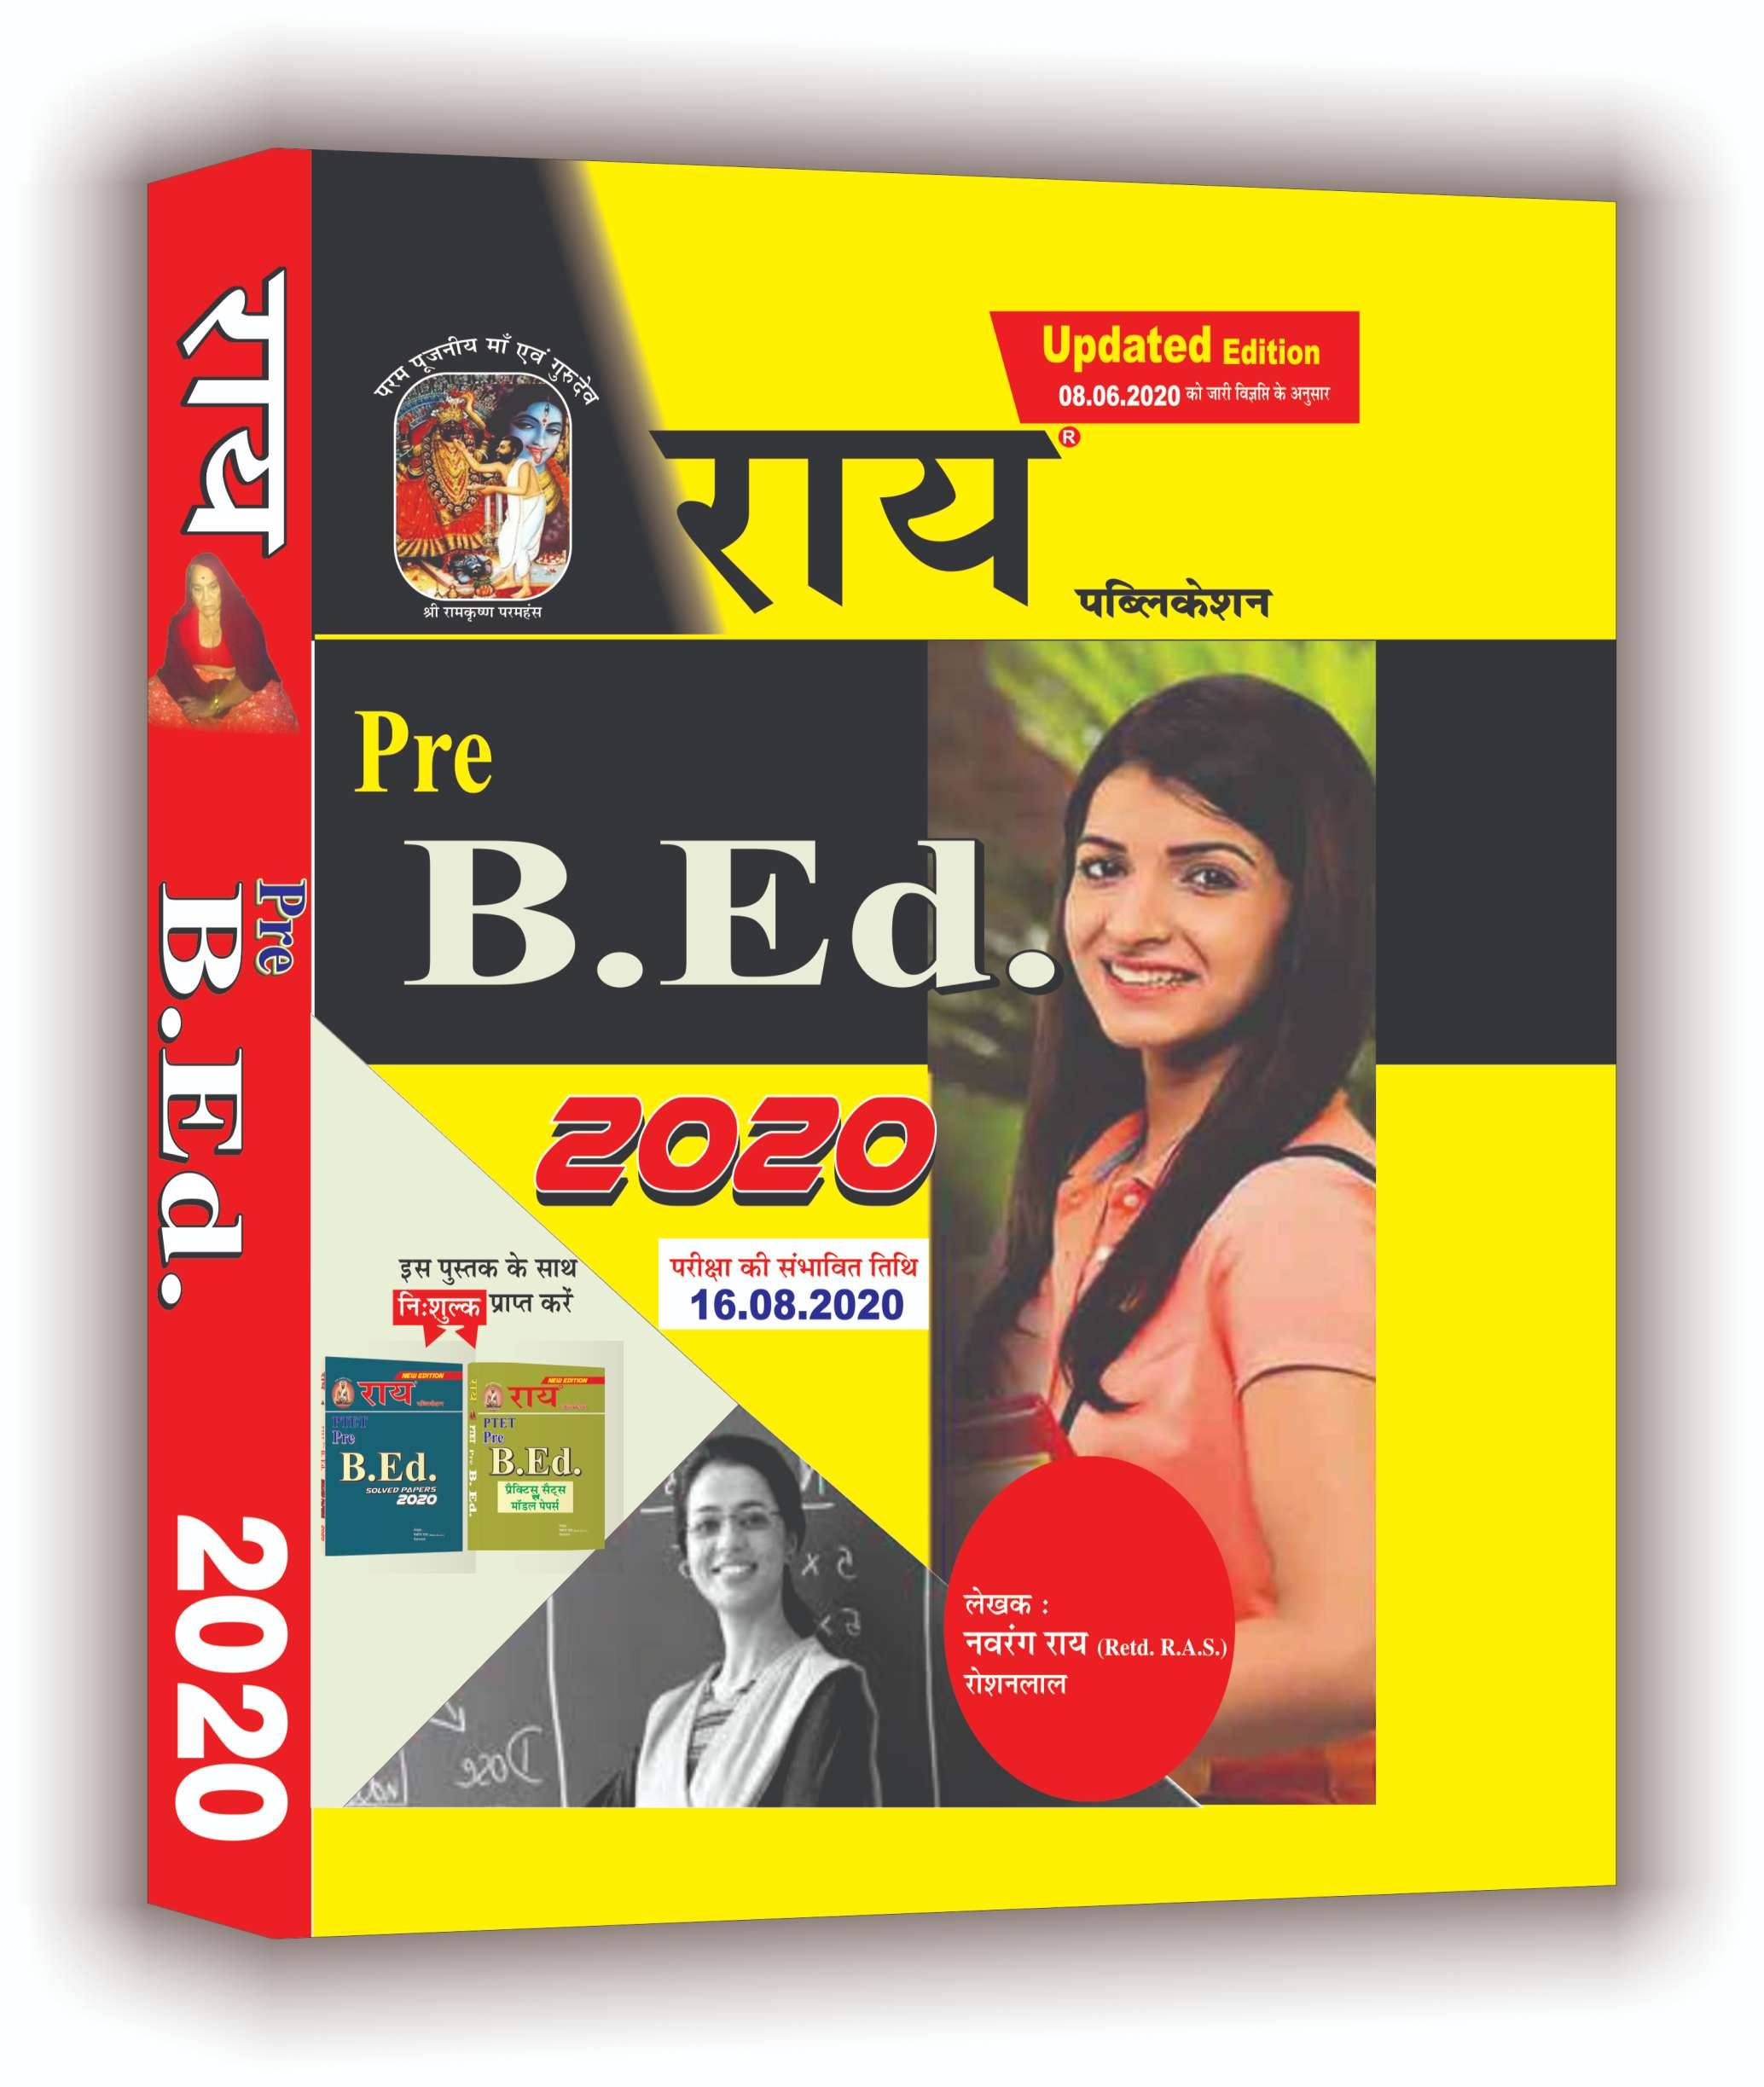 Rajasthan PTET Pre B.ED Updated Edition with free Solved & Practice Sets 2020 ( Updated Edition )